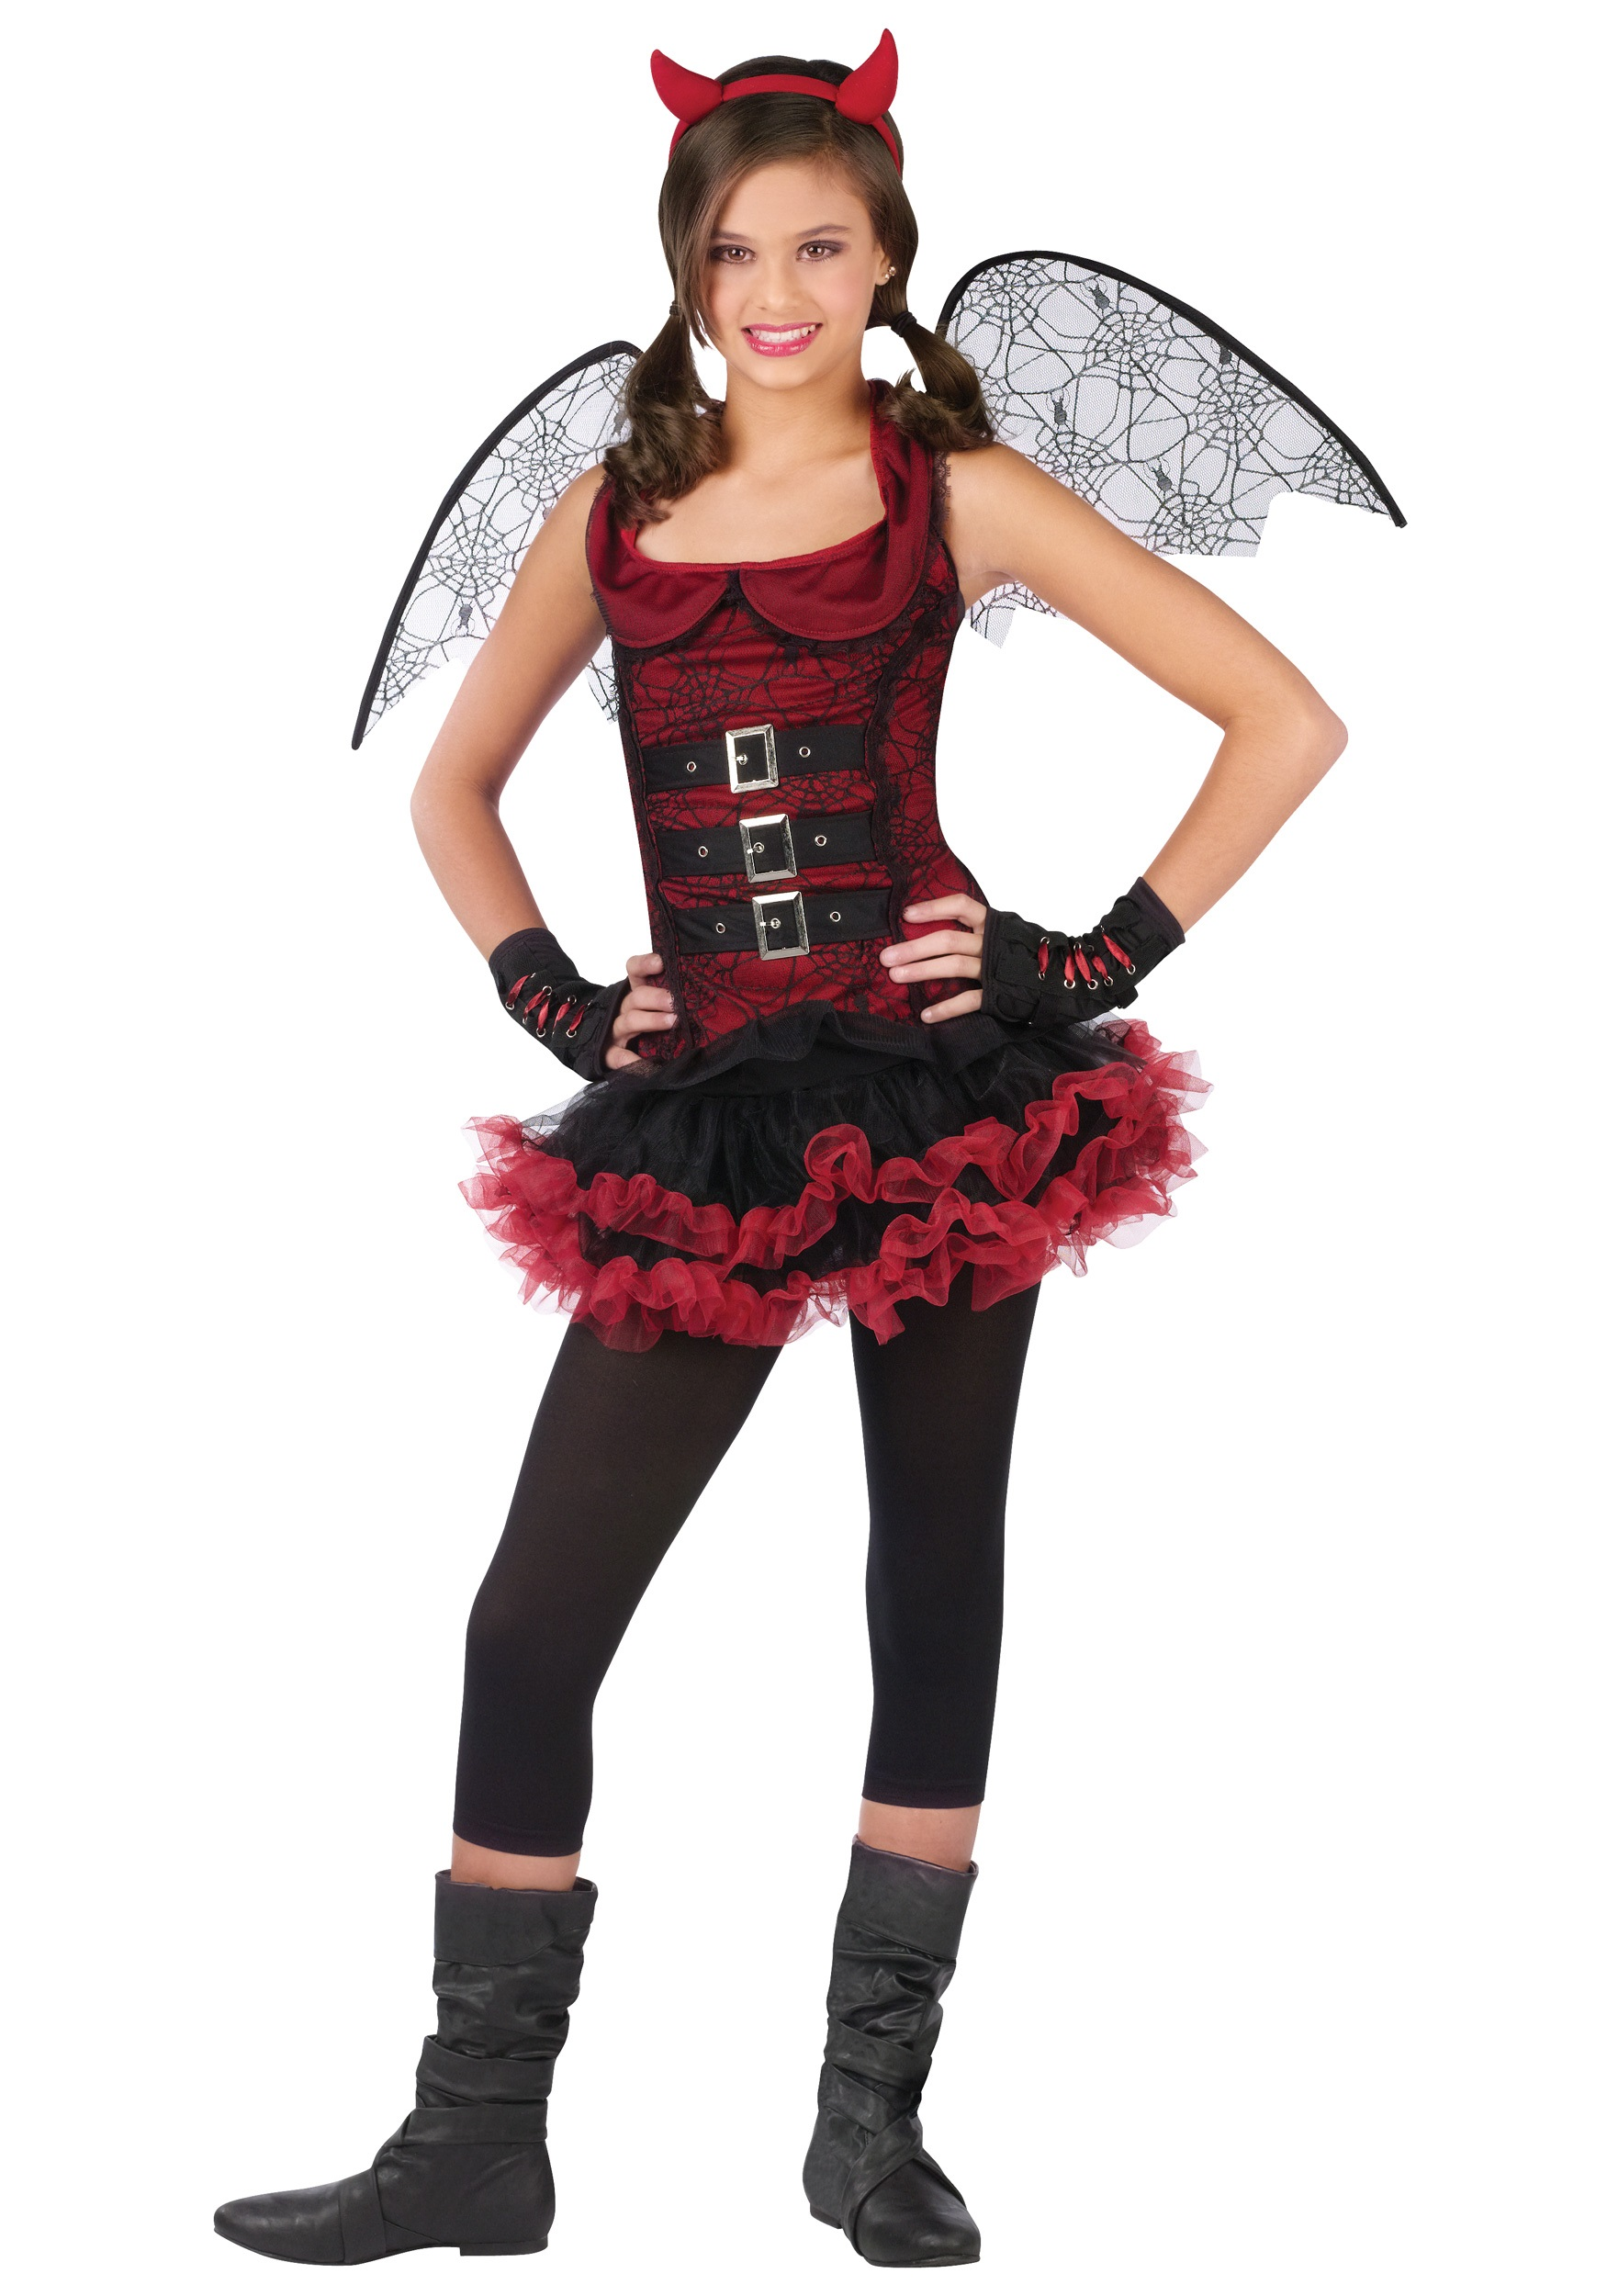 Tween Night Wing Devil Costume  sc 1 st  Halloween Costumes & Tween Night Wing Devil Costume - Halloween Costumes